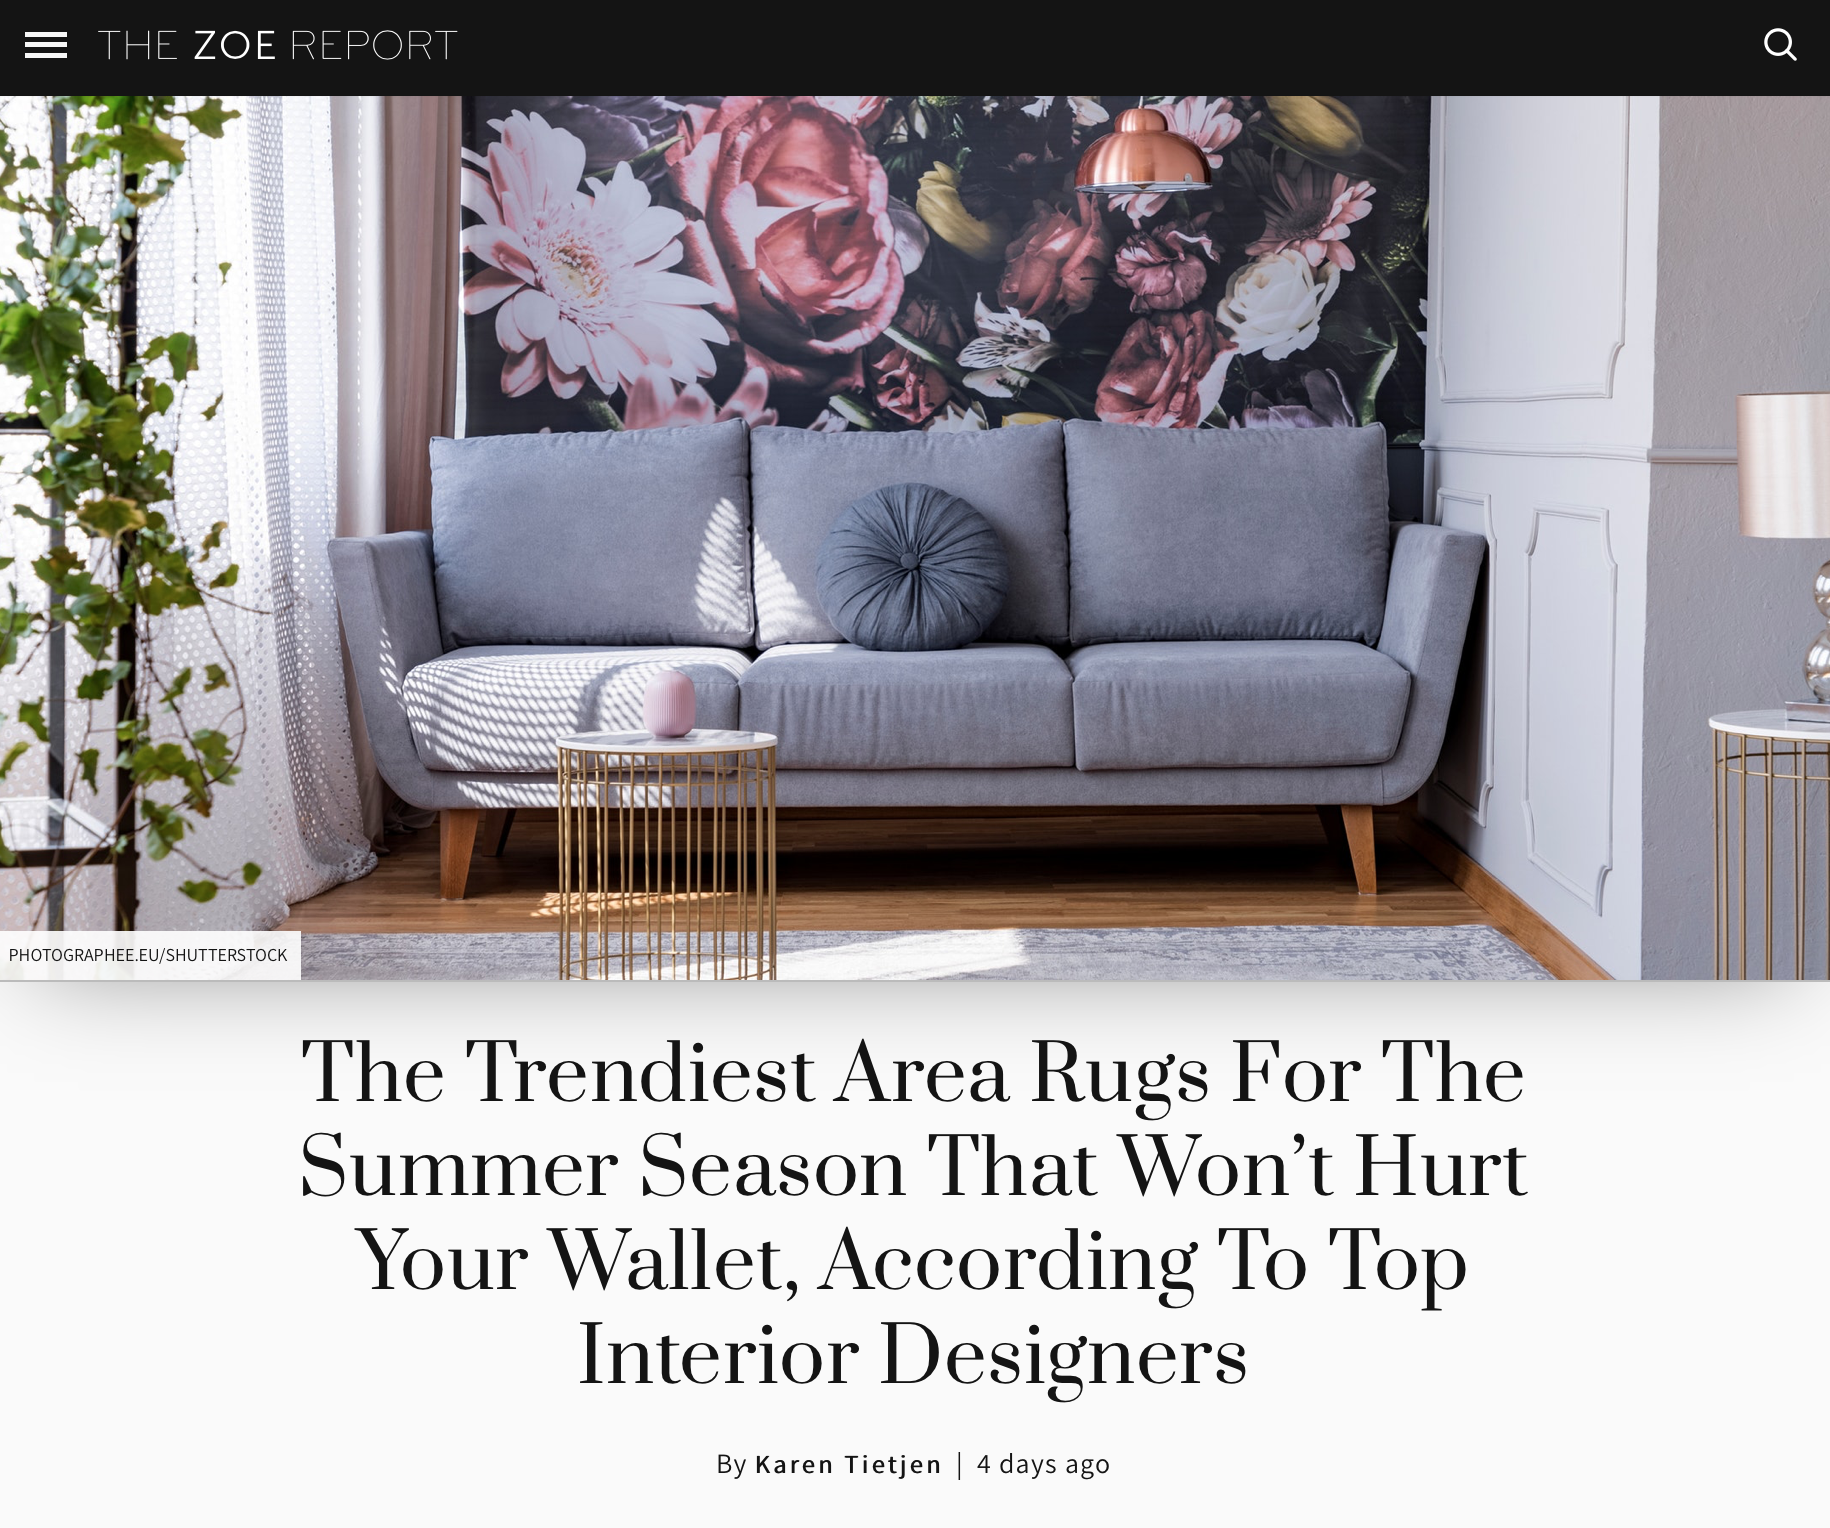 Lori Dennis talks to the Zoe Report about area rugs